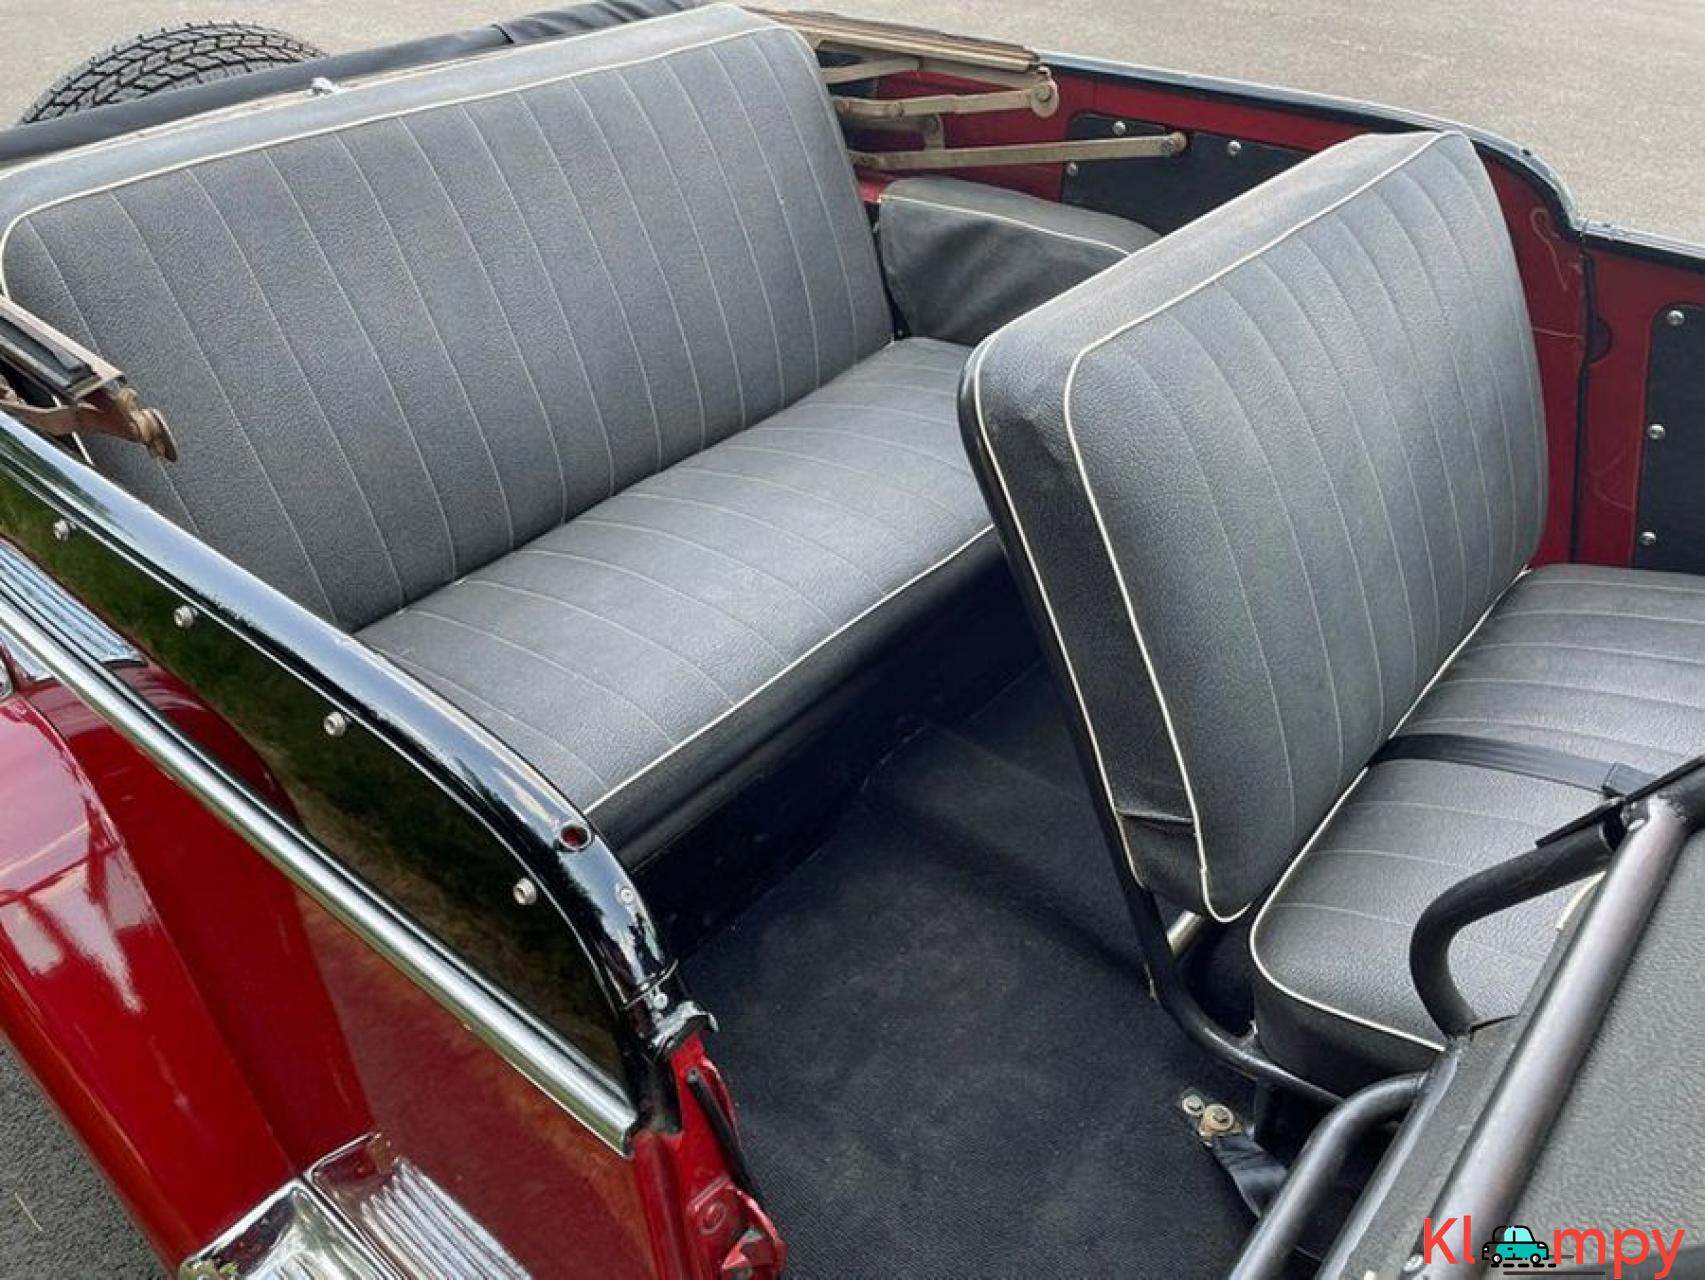 1948 Willys Jeepster Convertible GM 2.5 liter 4 cyl - 6/16